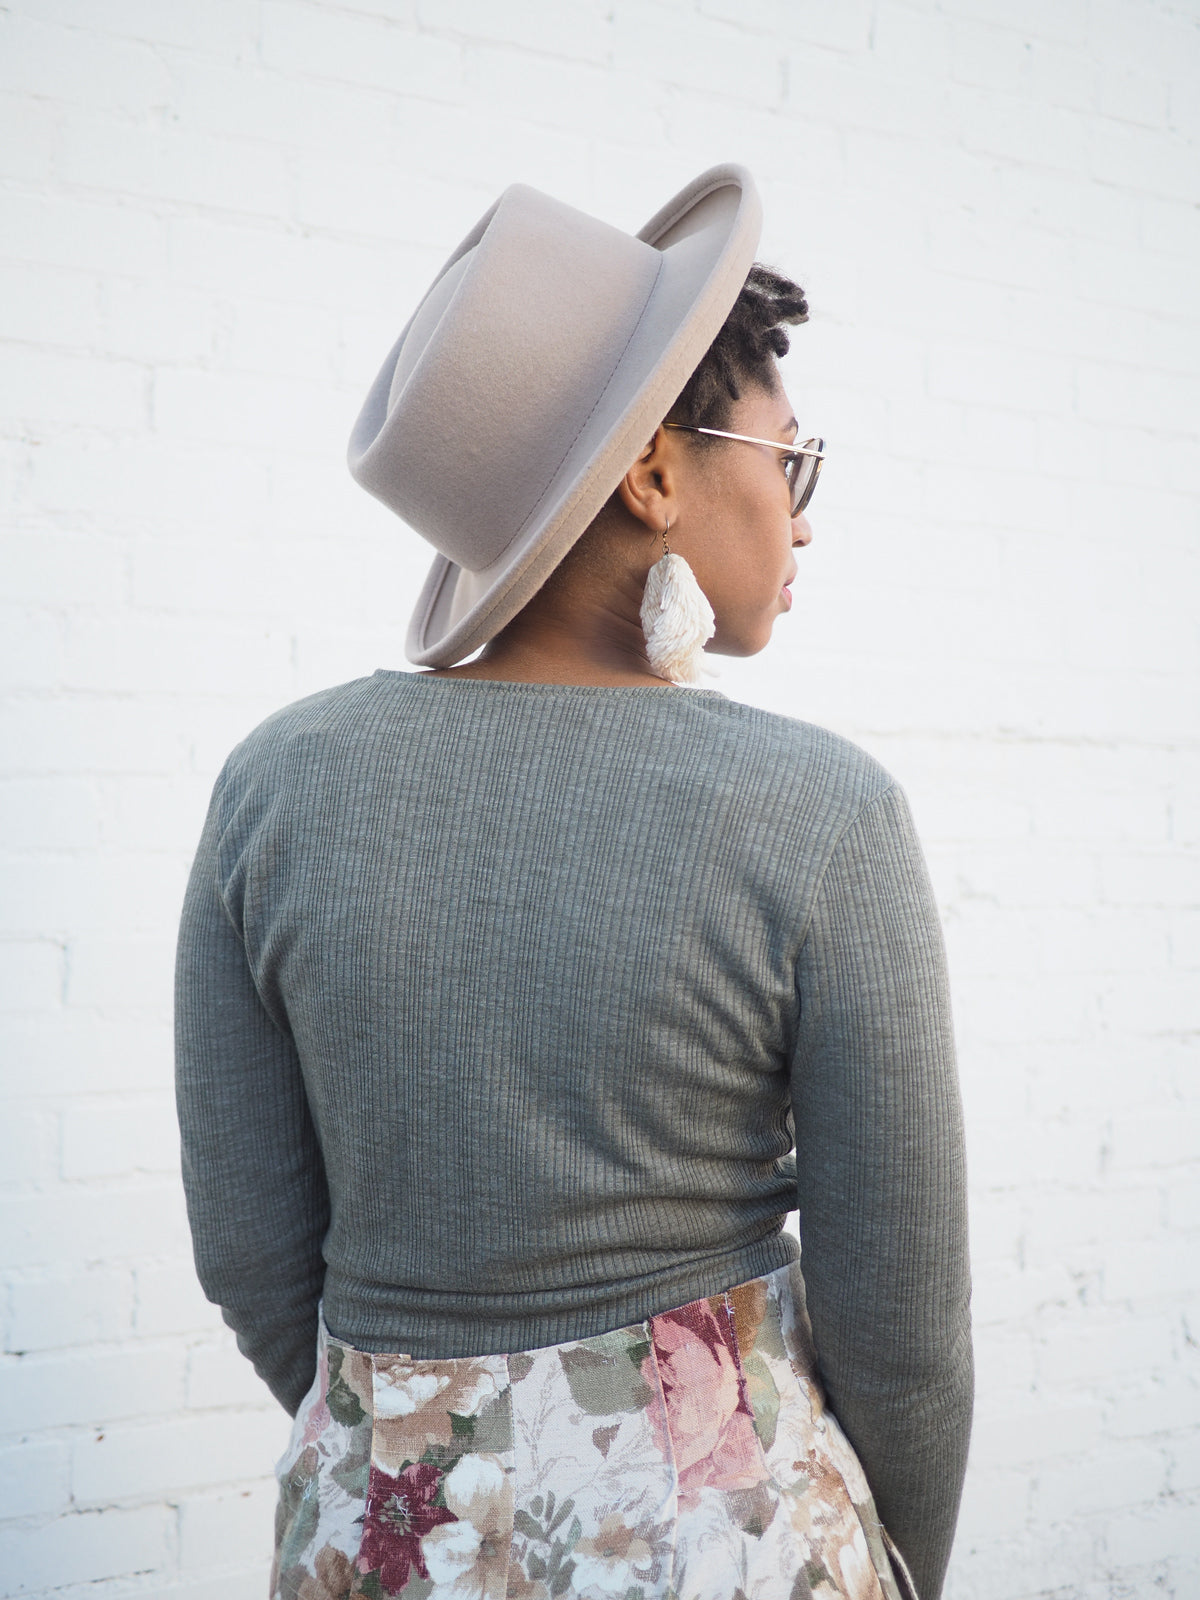 Back View | Elio Top Sewing Pattern